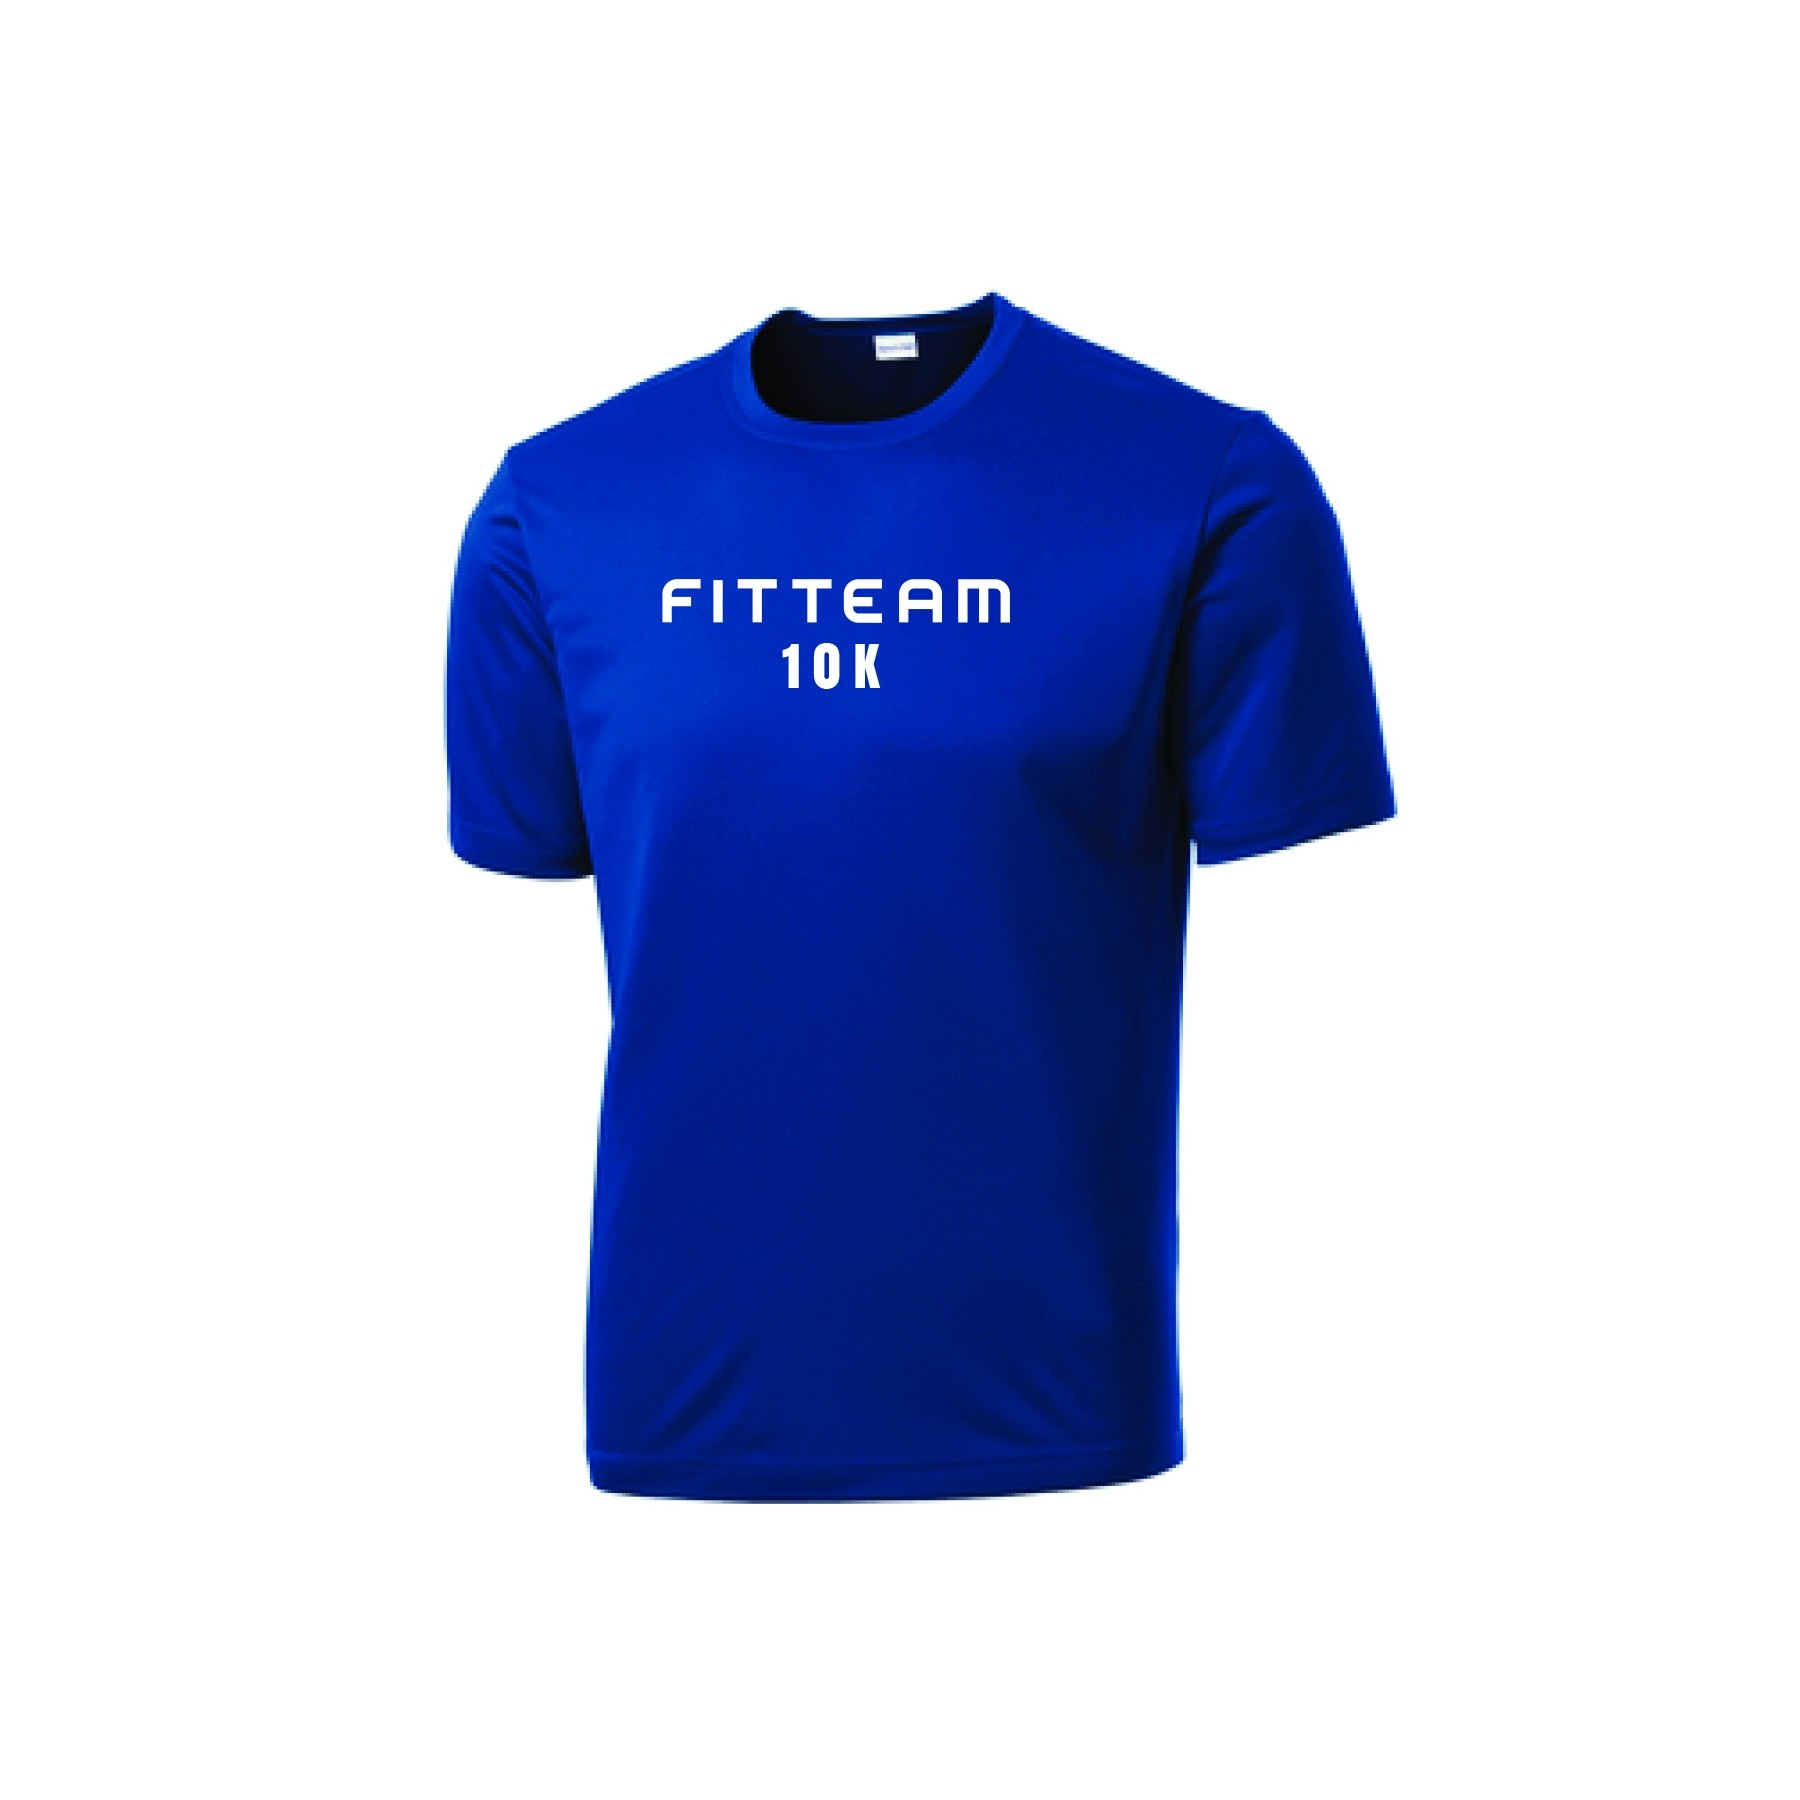 9b99b97b FITTEAM 10K UNISEX DRIFIT T-SHIRT. (ST350) - T-Shirts - MEN'S APPAREL